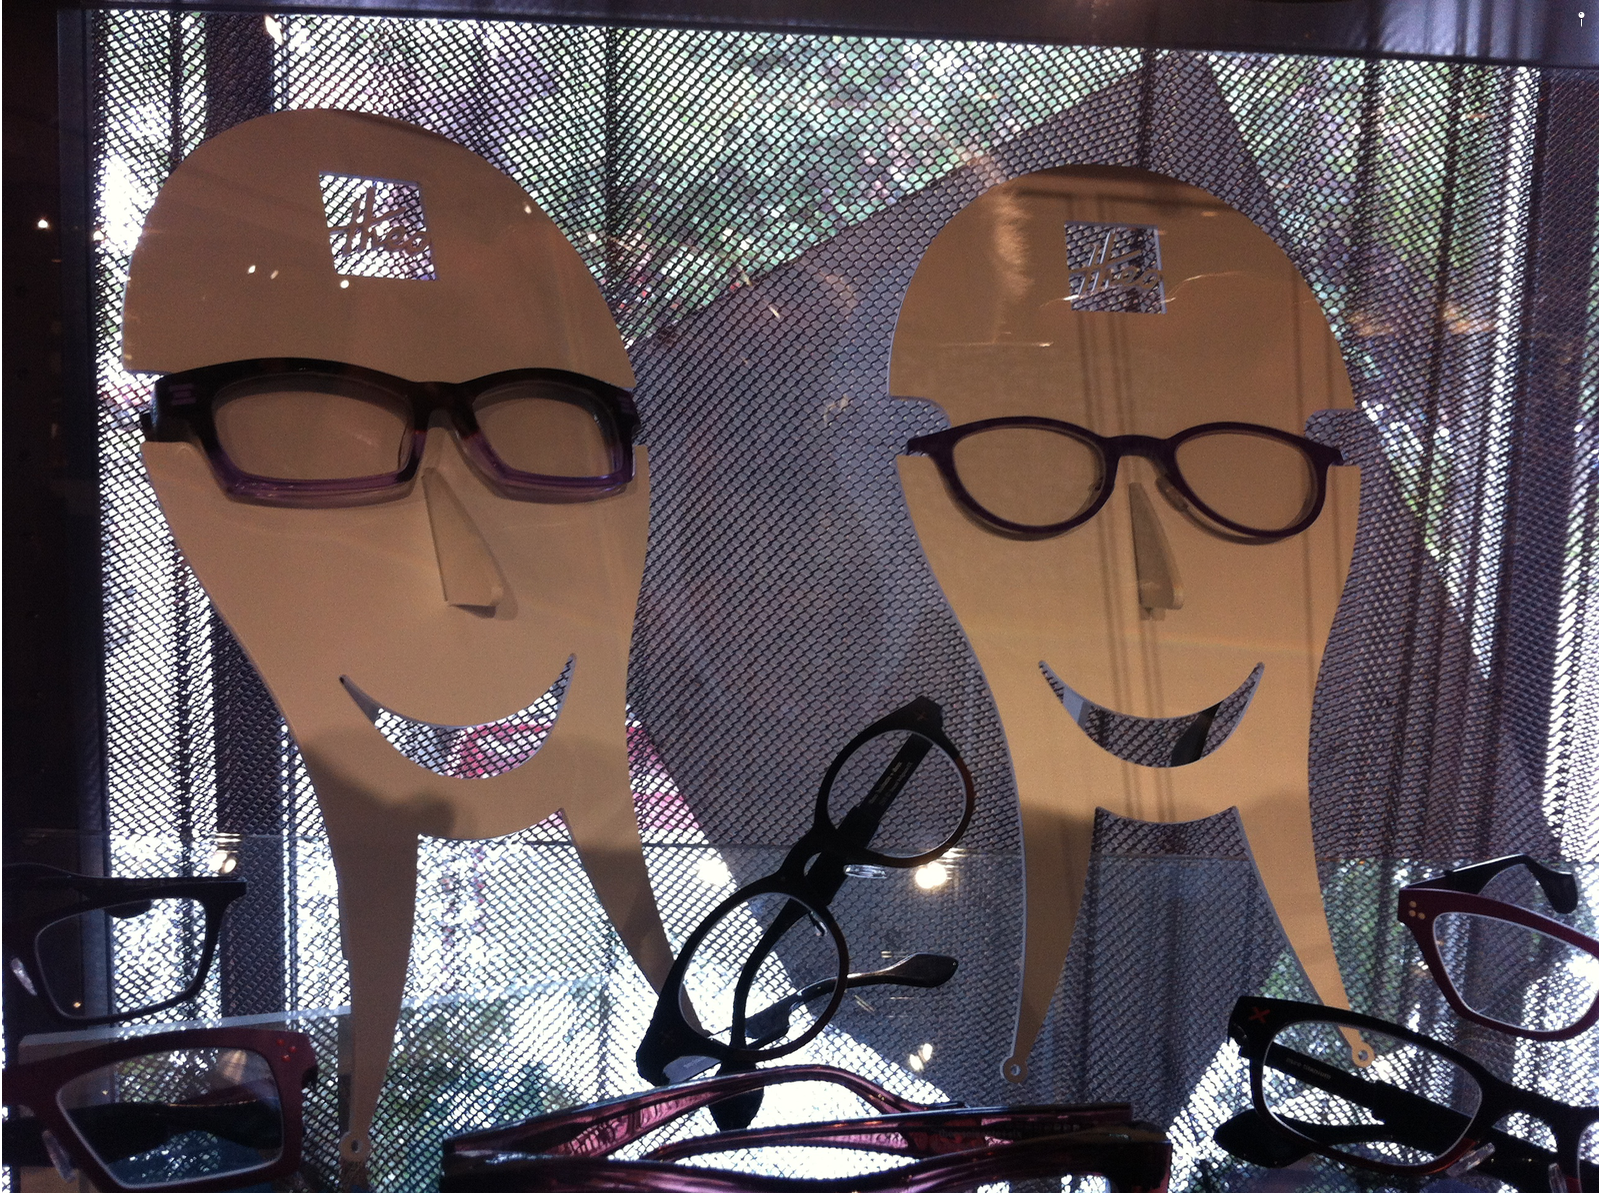 17th Avenue has some great eye glass shops like Eye Candy and Brass Monocle.